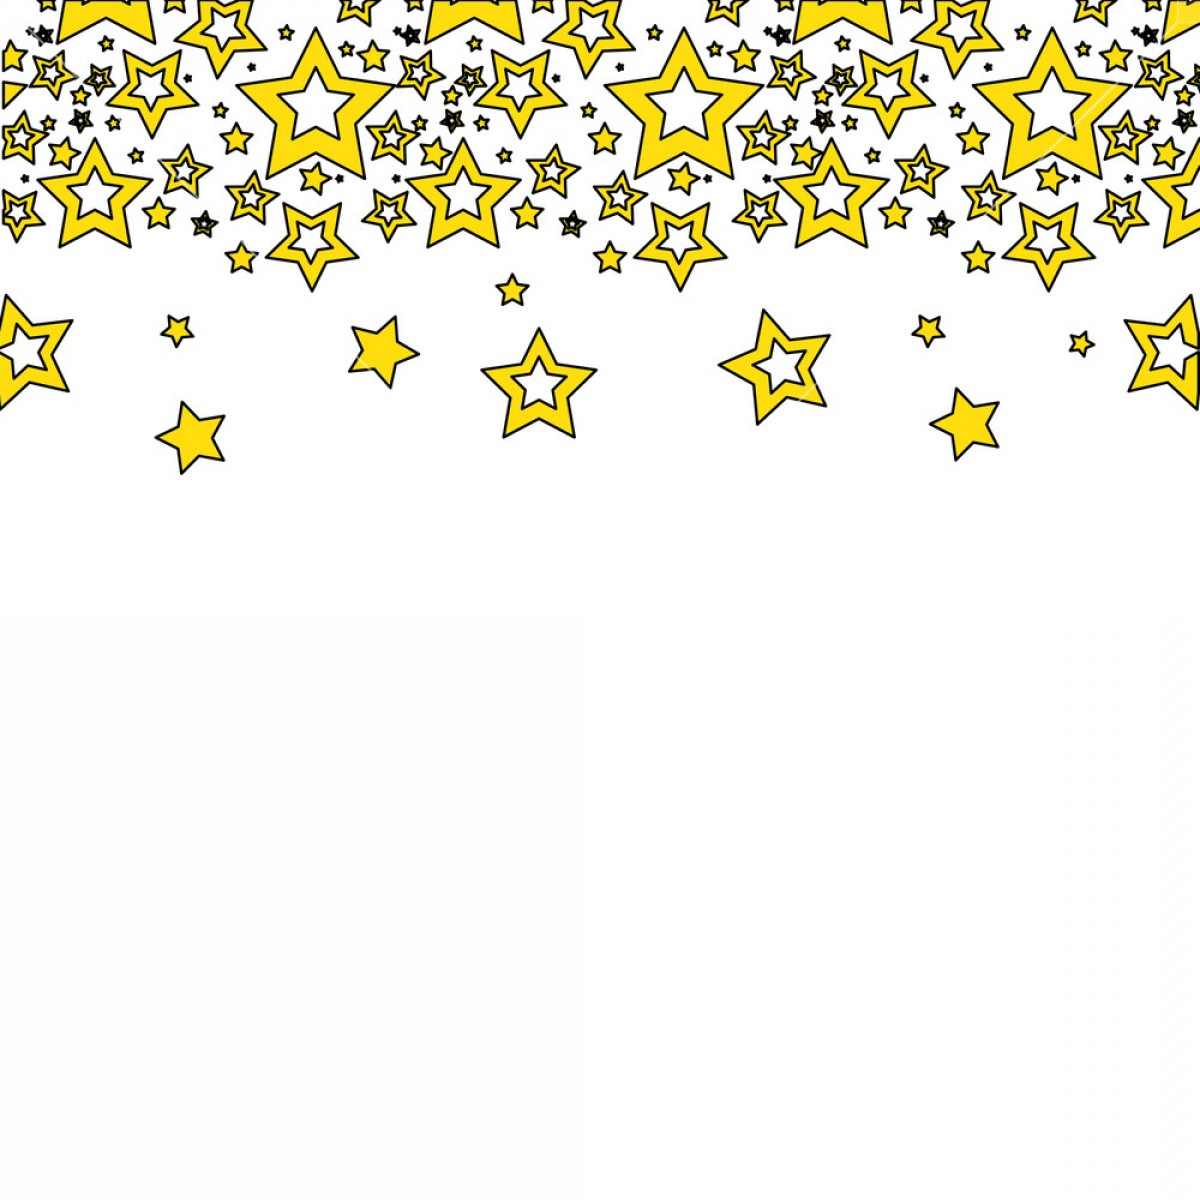 Stars Yellow Christmas Vector: Yellow Stars Christmas Decoration Backgroud Vector Illustration Htlmktwgjawibma